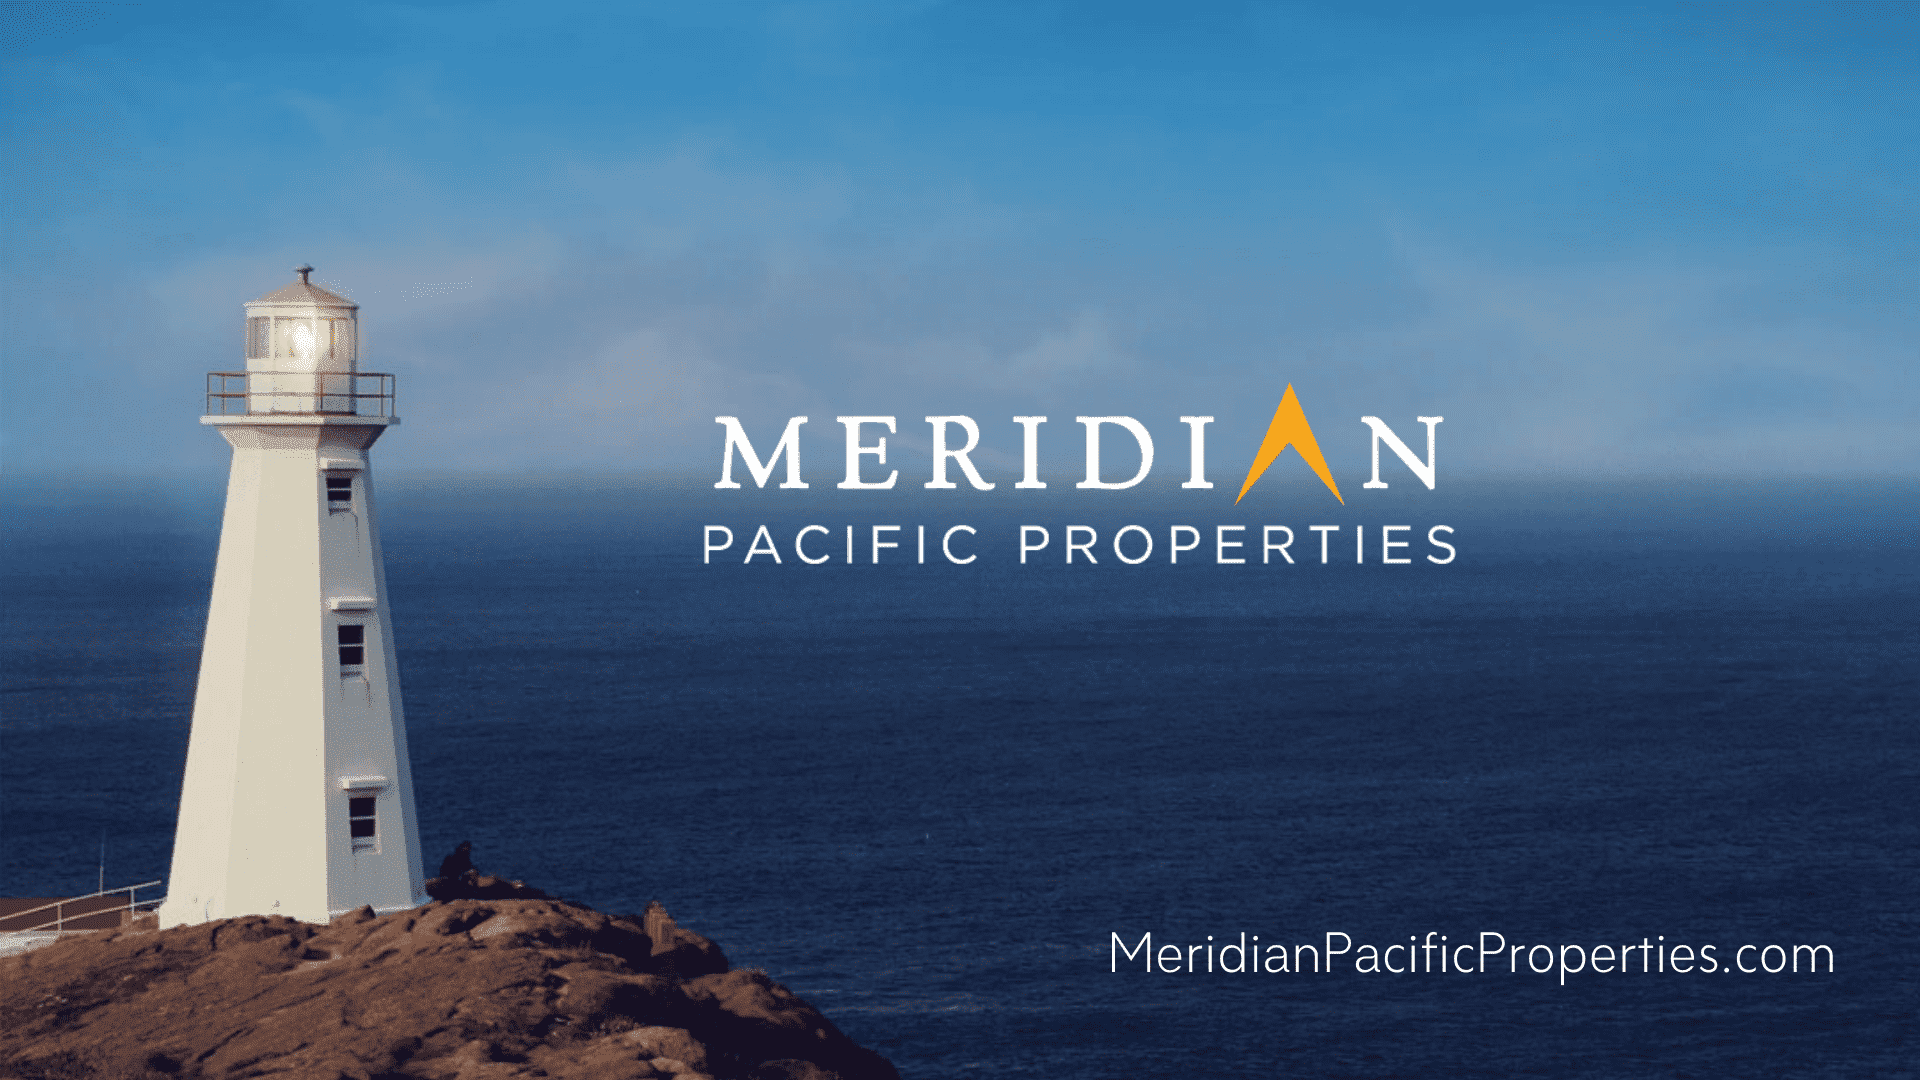 Meridian Pacific Properties, inc